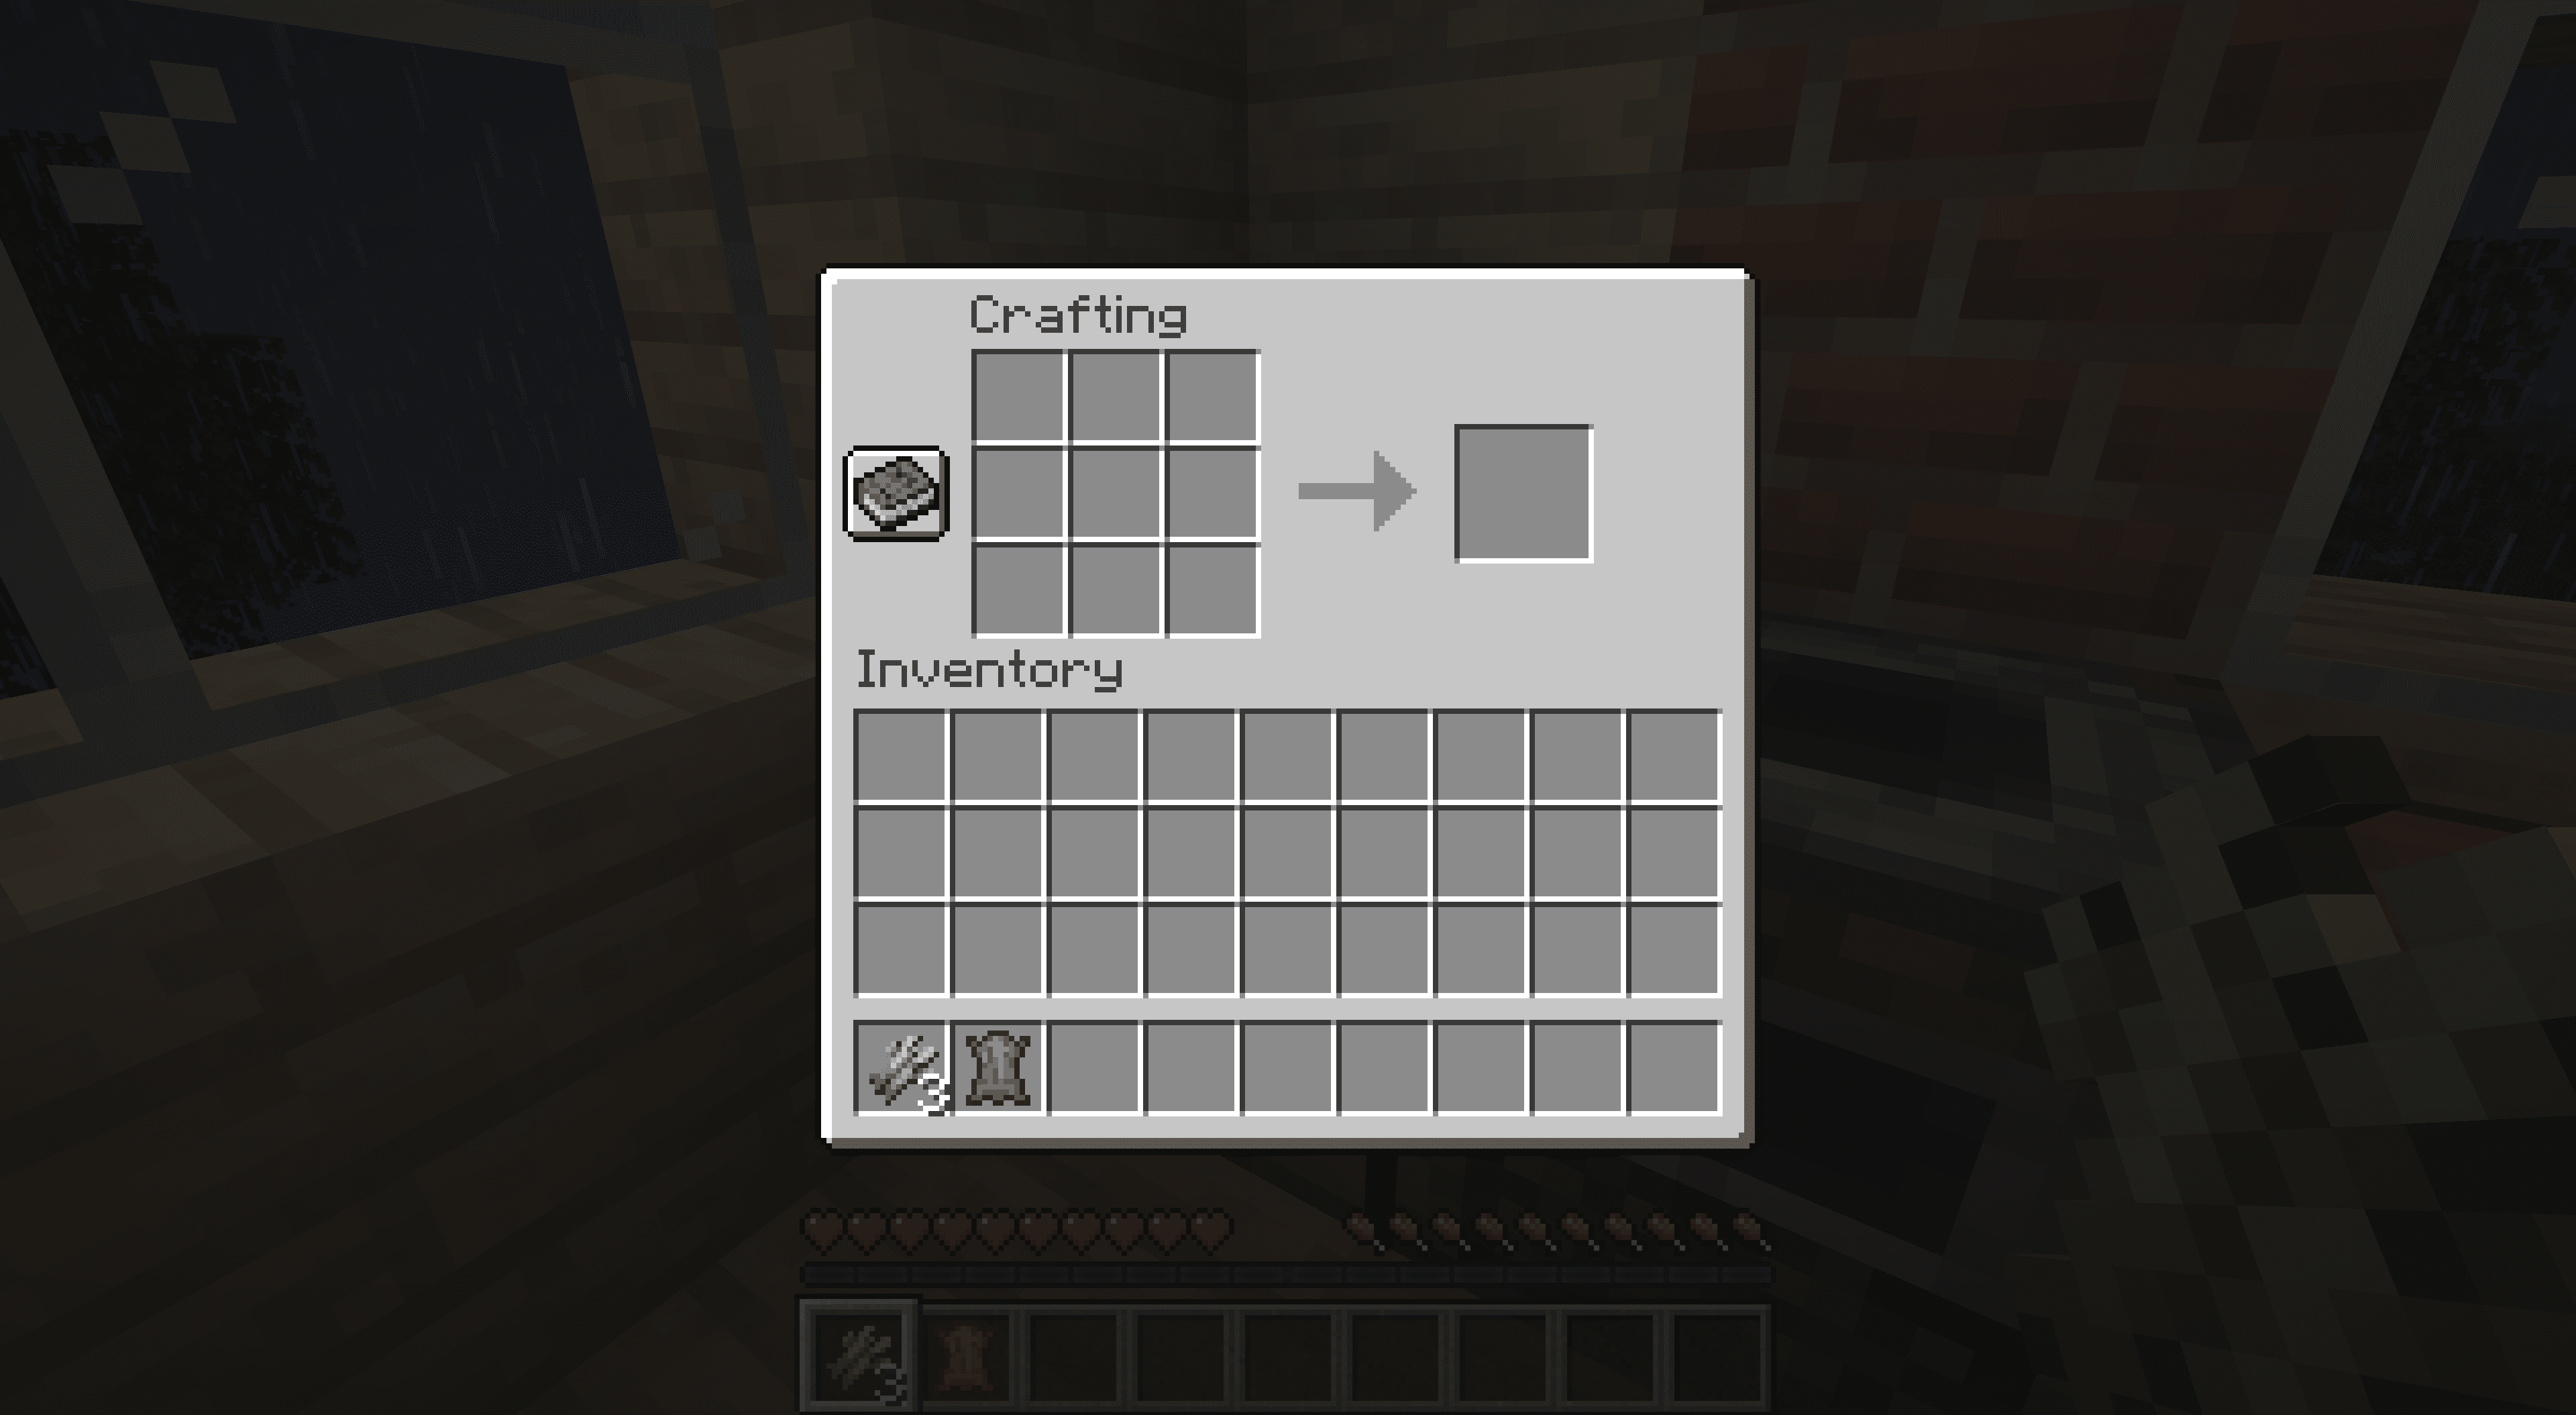 The crafting table interface in Minecraft.